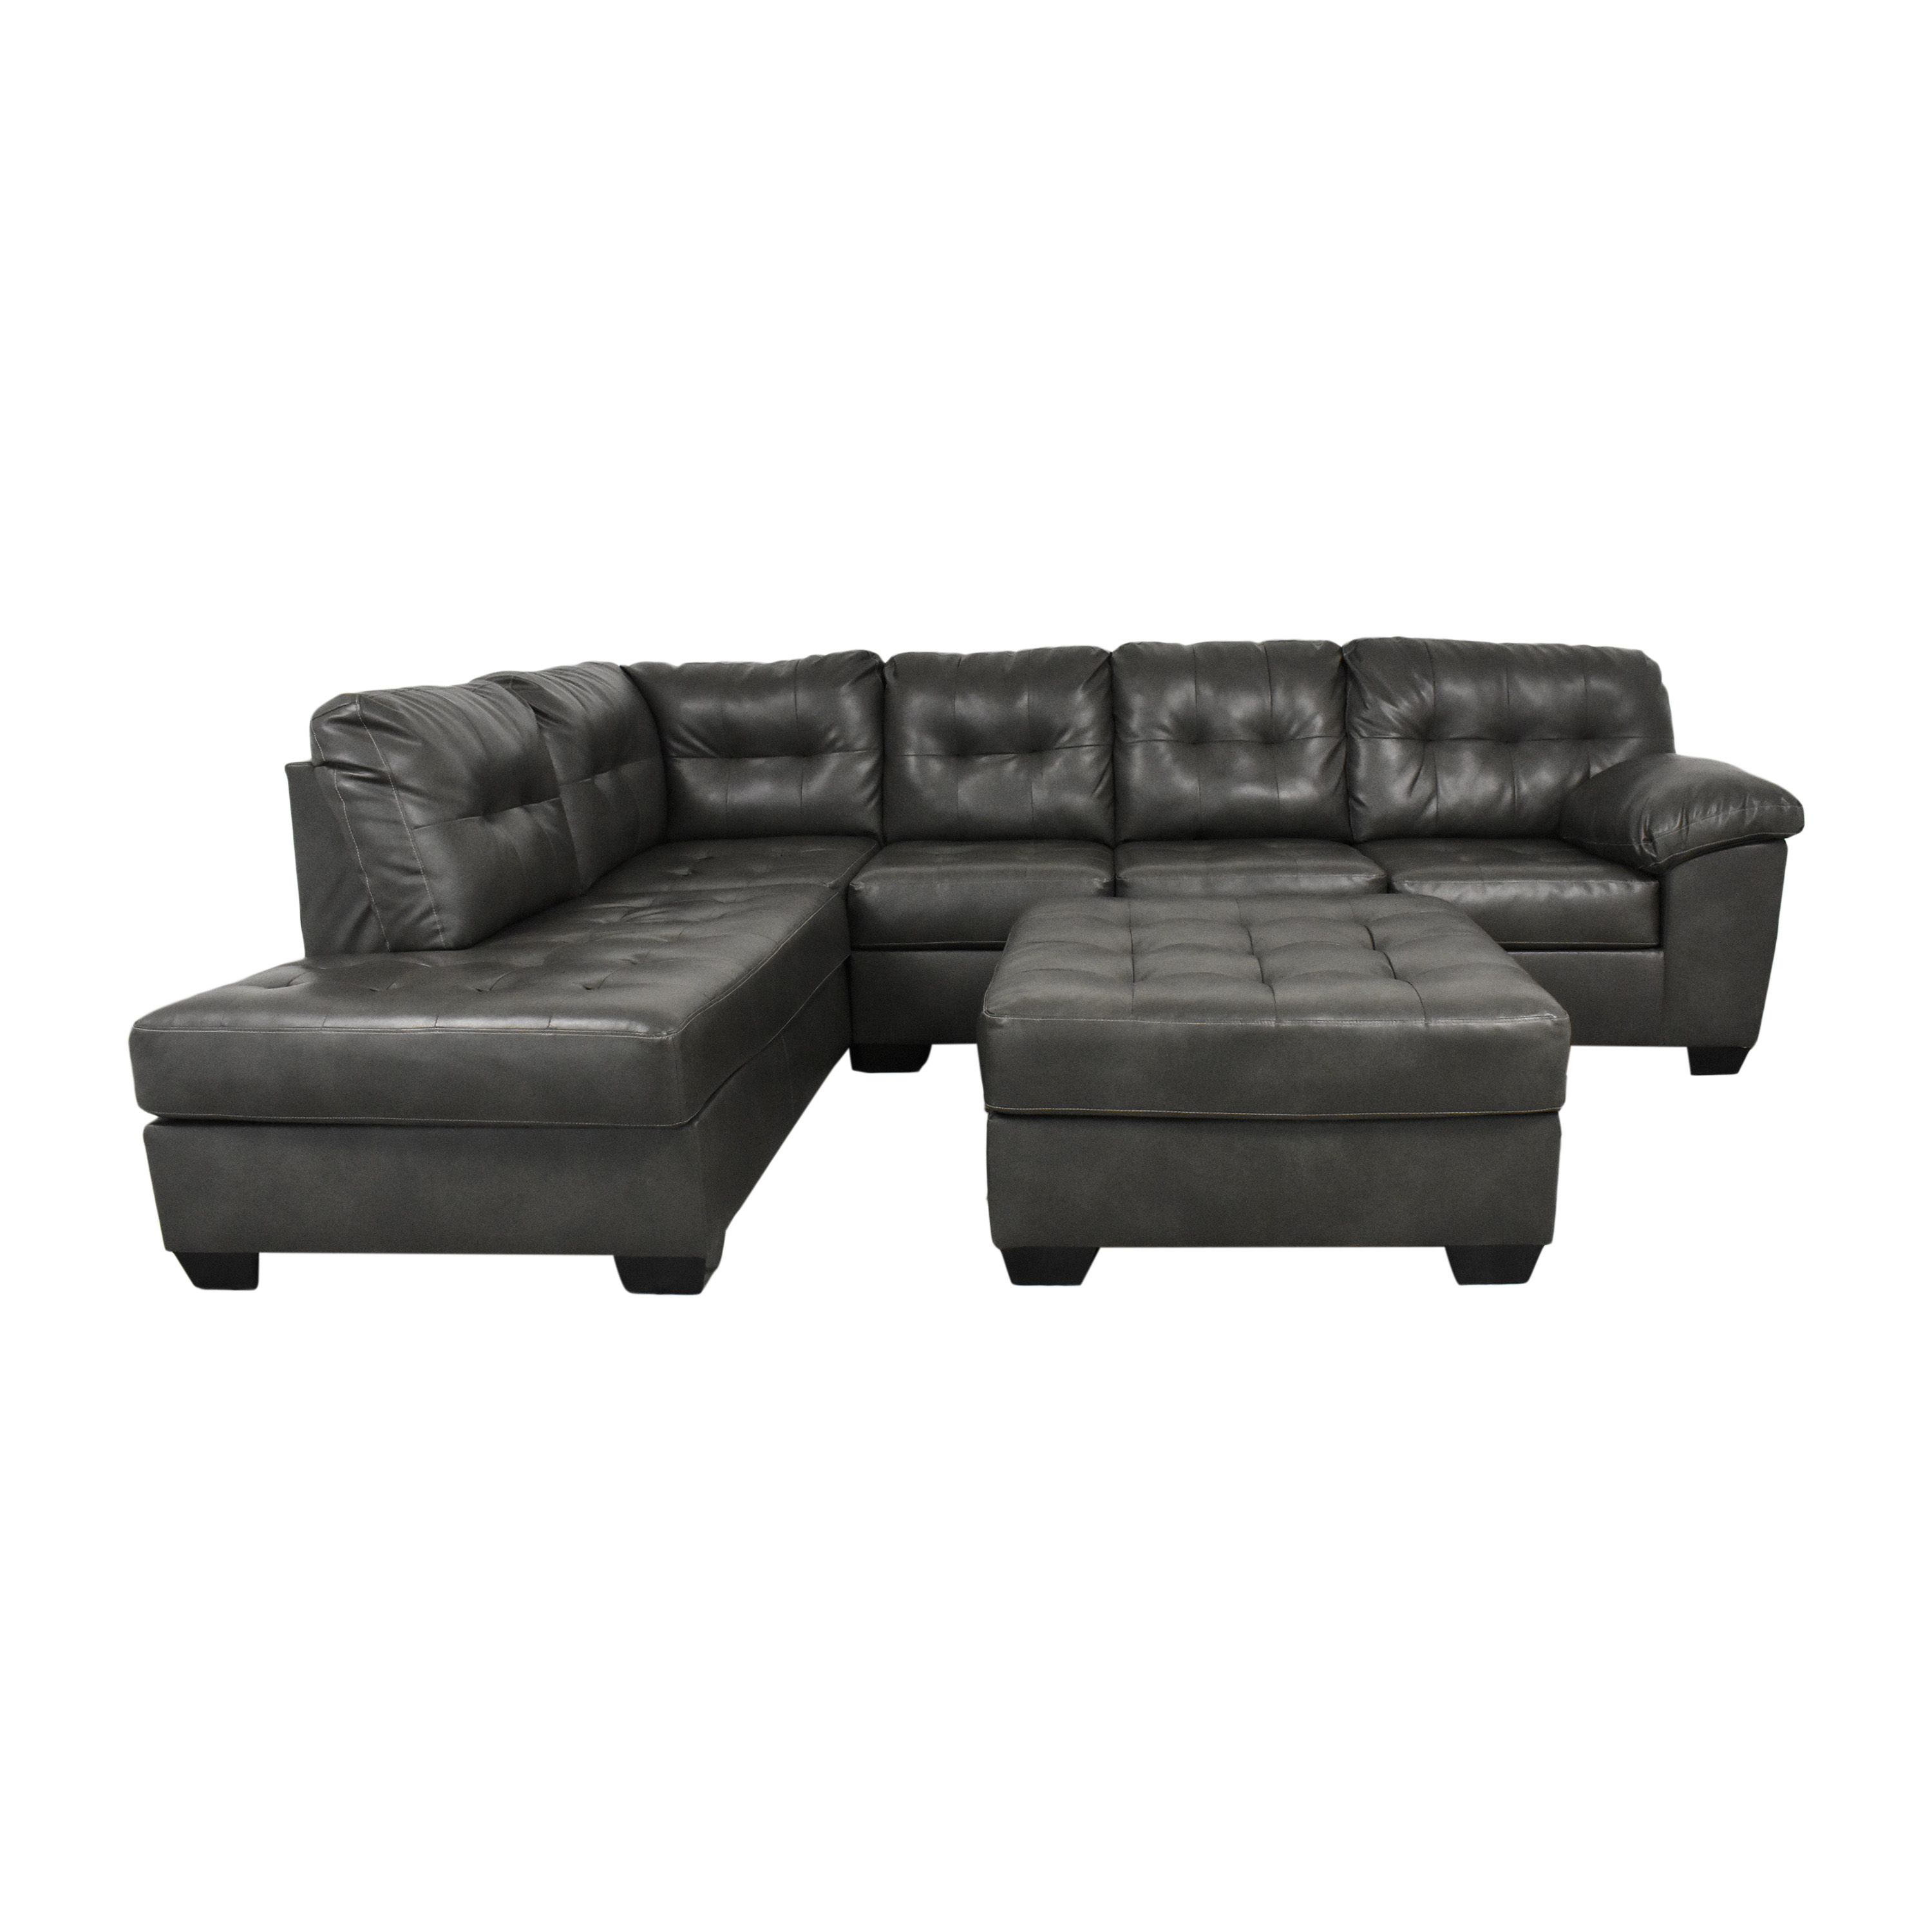 Flash Furniture Flash Furniture Tufted Sectional Sofa with Chaise nyc